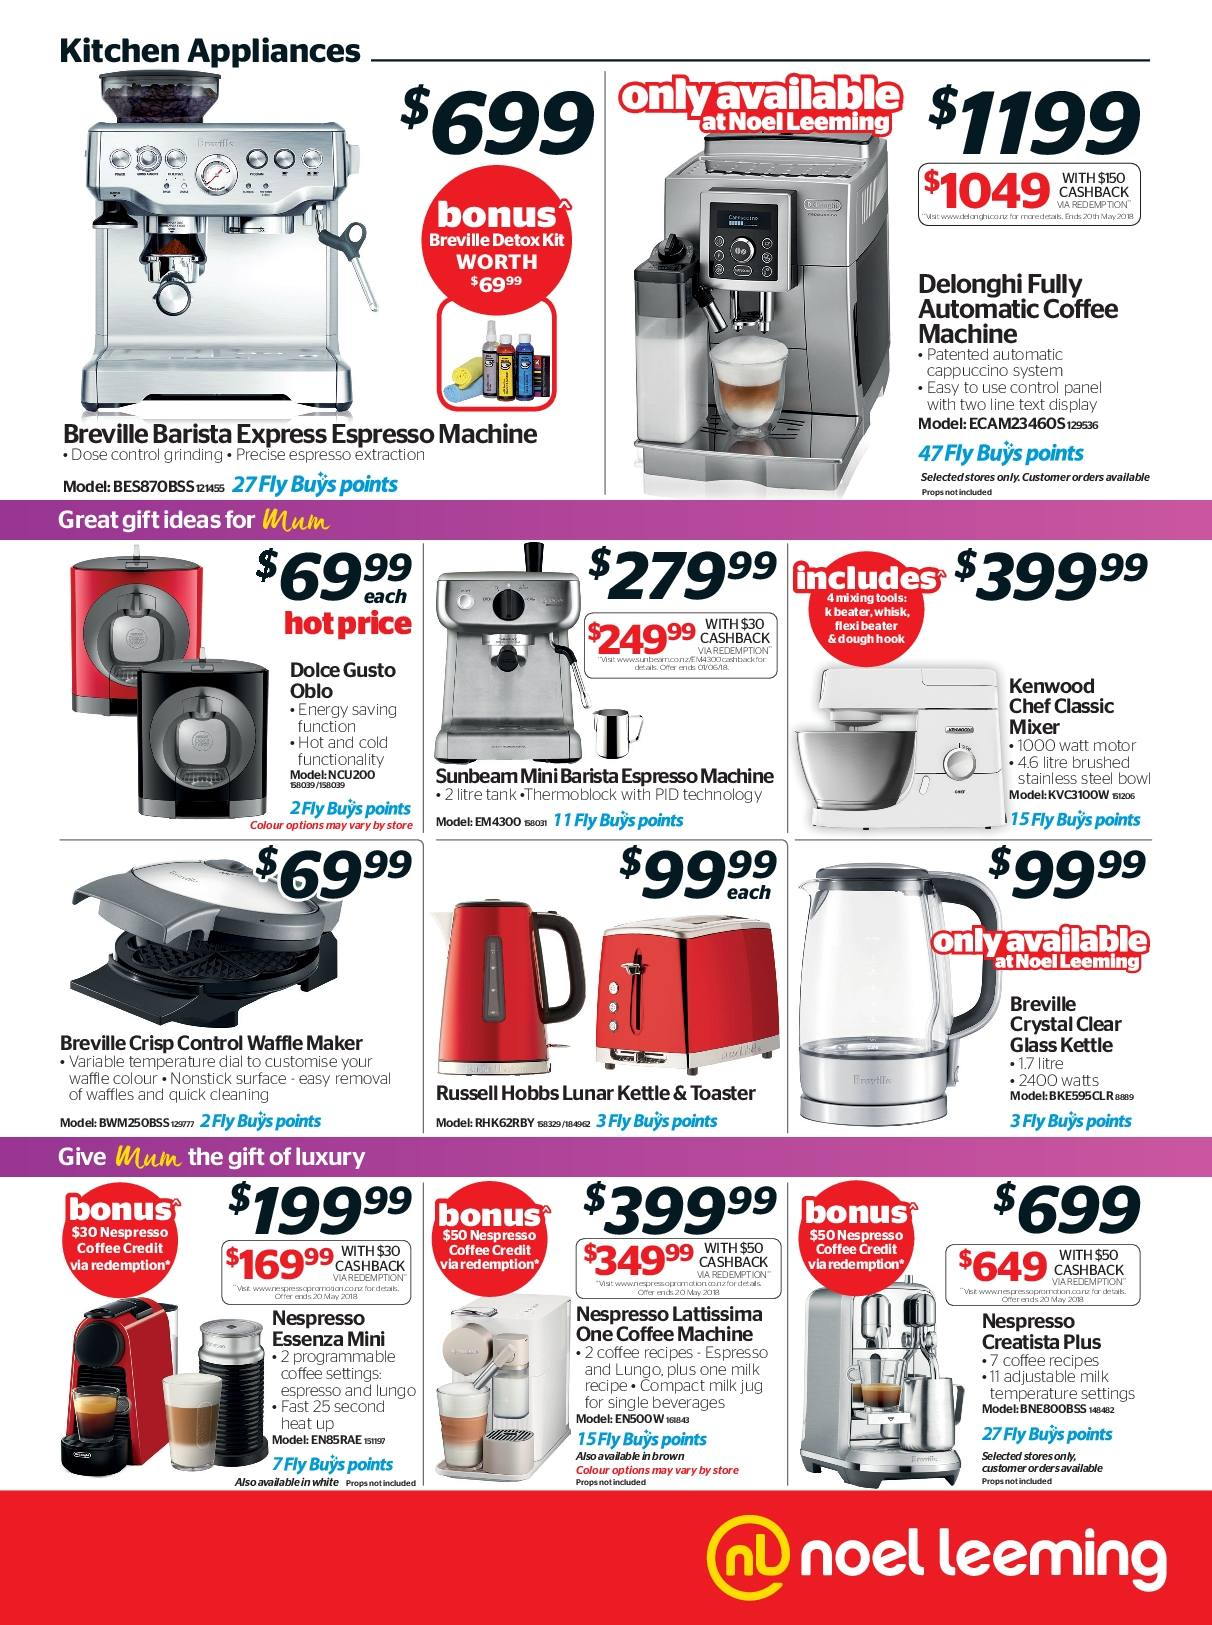 Noel Leeming mailer - 02.05.2018 - 15.05.2018 - Sales products - cappuccino, coffee, delonghi, glass, milk, hook, kitchen, bow, toaster, waffle maker, coffee machine, nespresso, russell hobbs, kettle. Page 3.